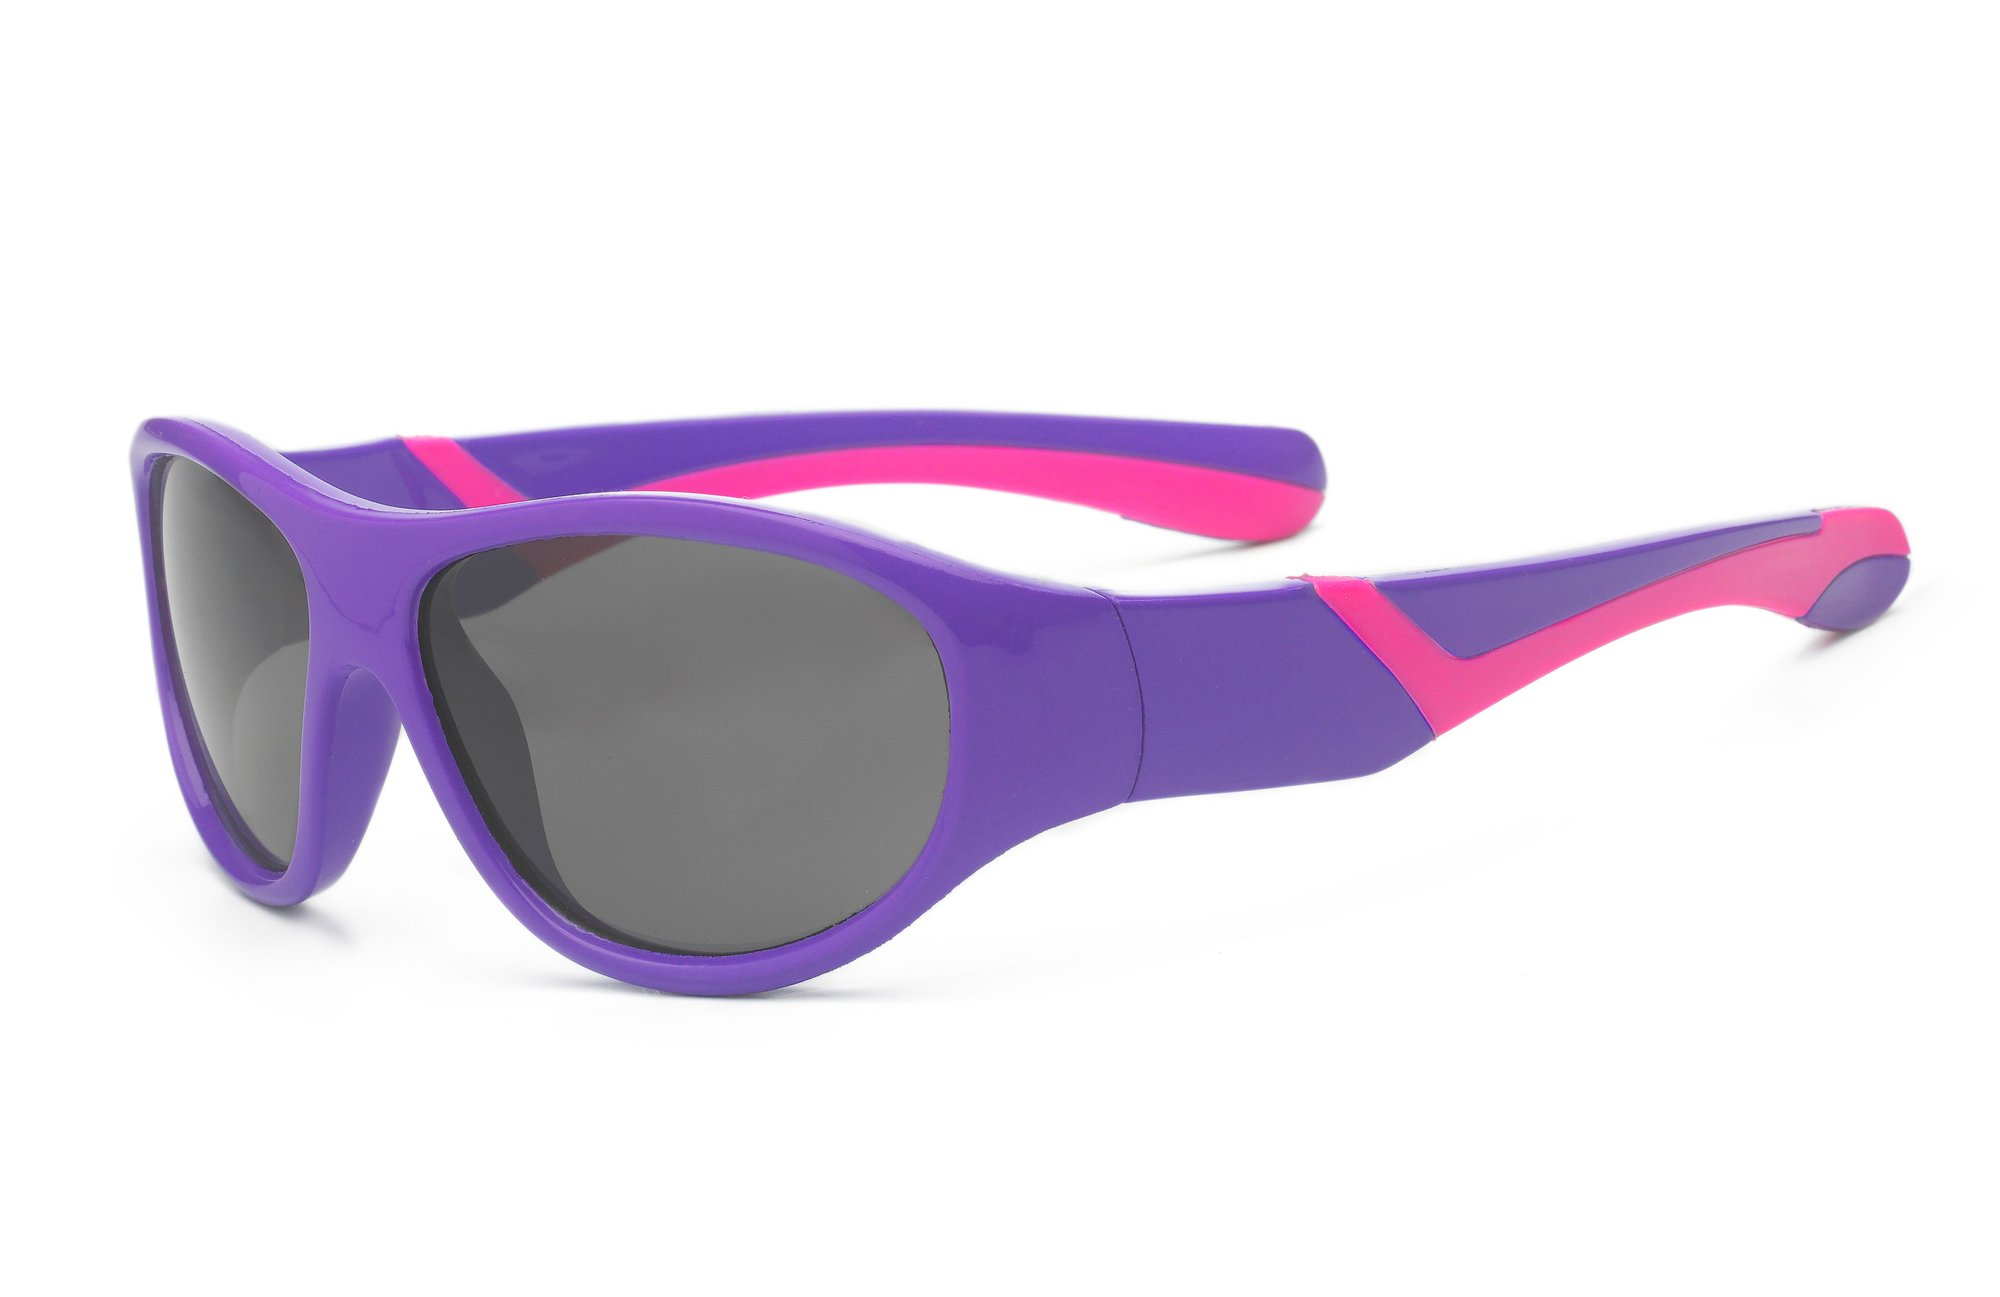 Real Kids Shades Discover Sunglasses for Toddler, Kid, Youth - 100% UVA UVB Protection, Polycarbonate Lenses, Unbreakable, Wrap Around Frames (Toddler 2+, Purple/Pink, Polarized)